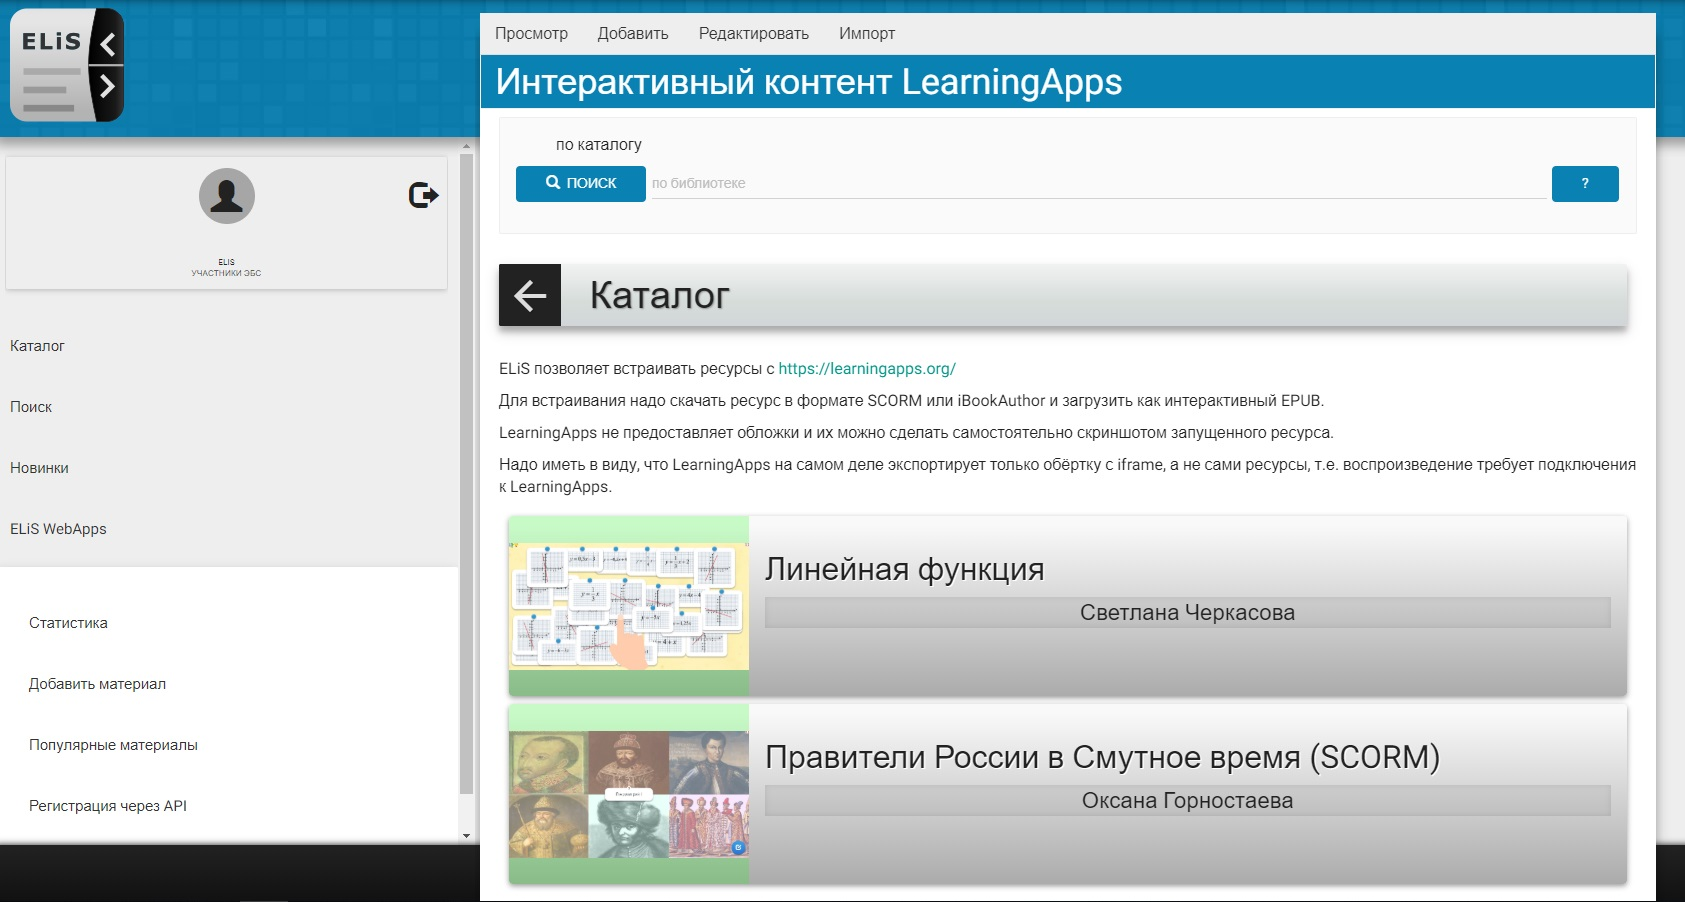 learningApp_catalog.jpg